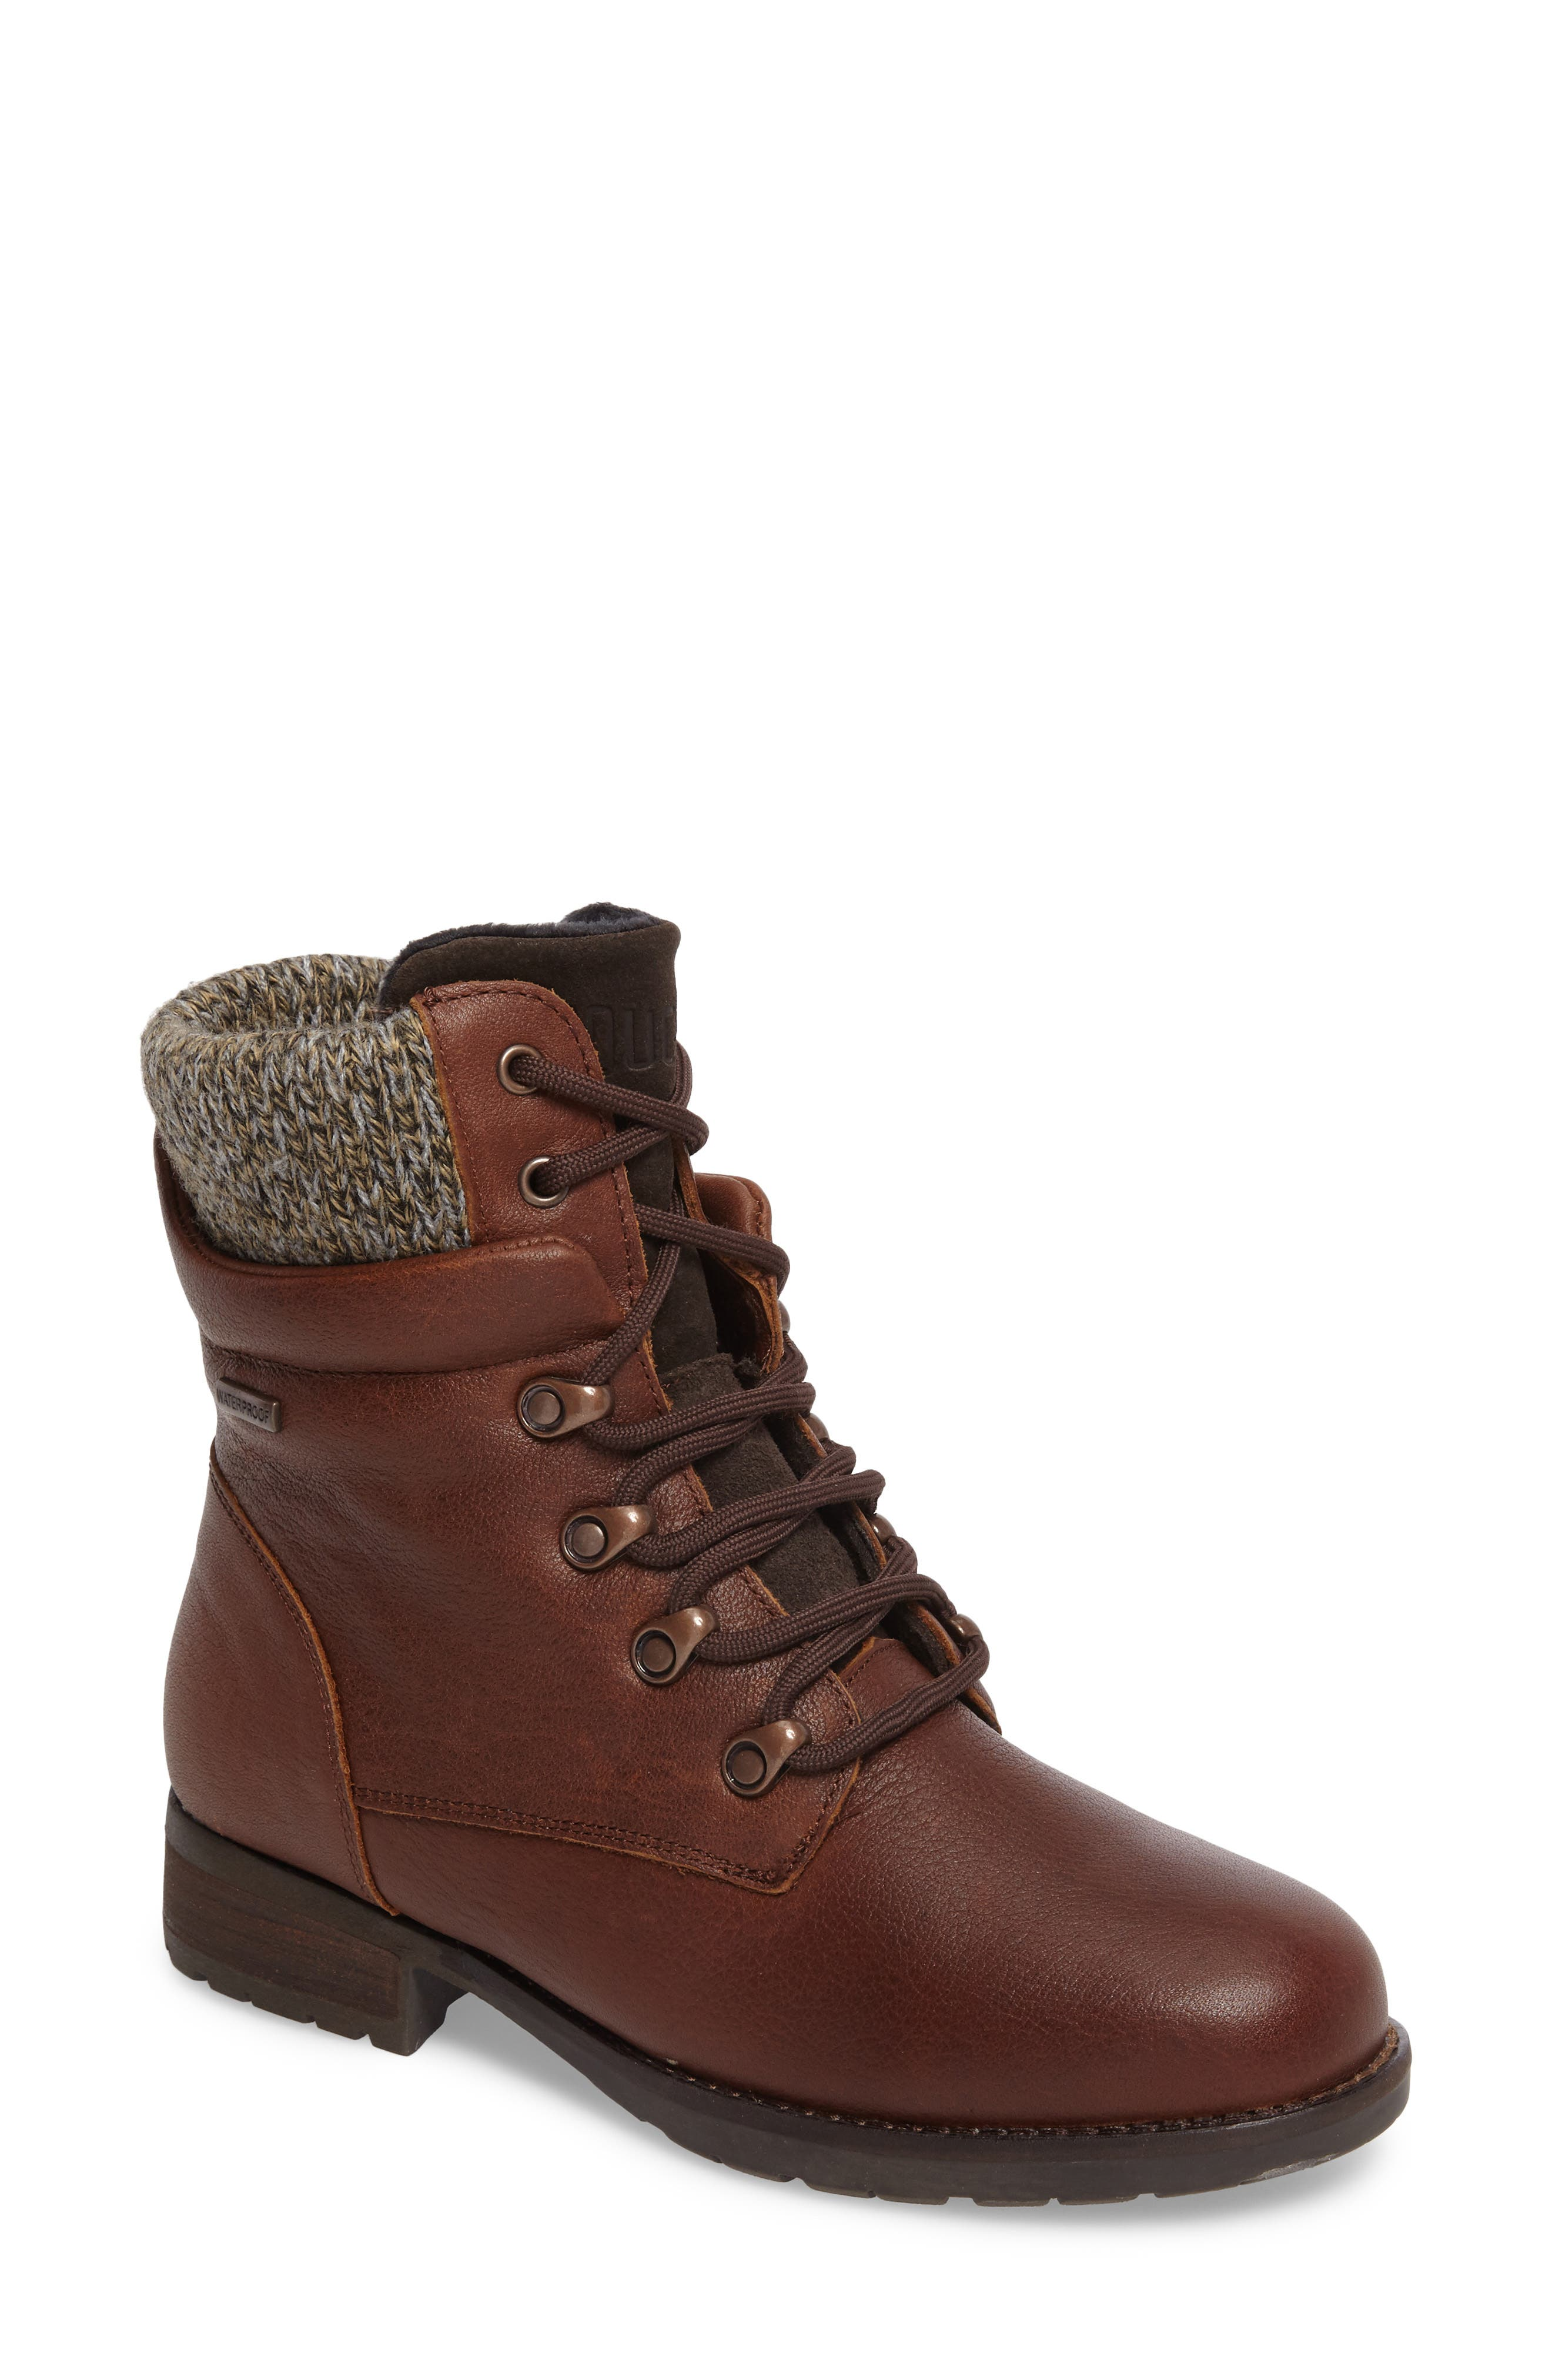 Derry Waterproof Boot,                             Main thumbnail 1, color,                             Dark Brown Leather